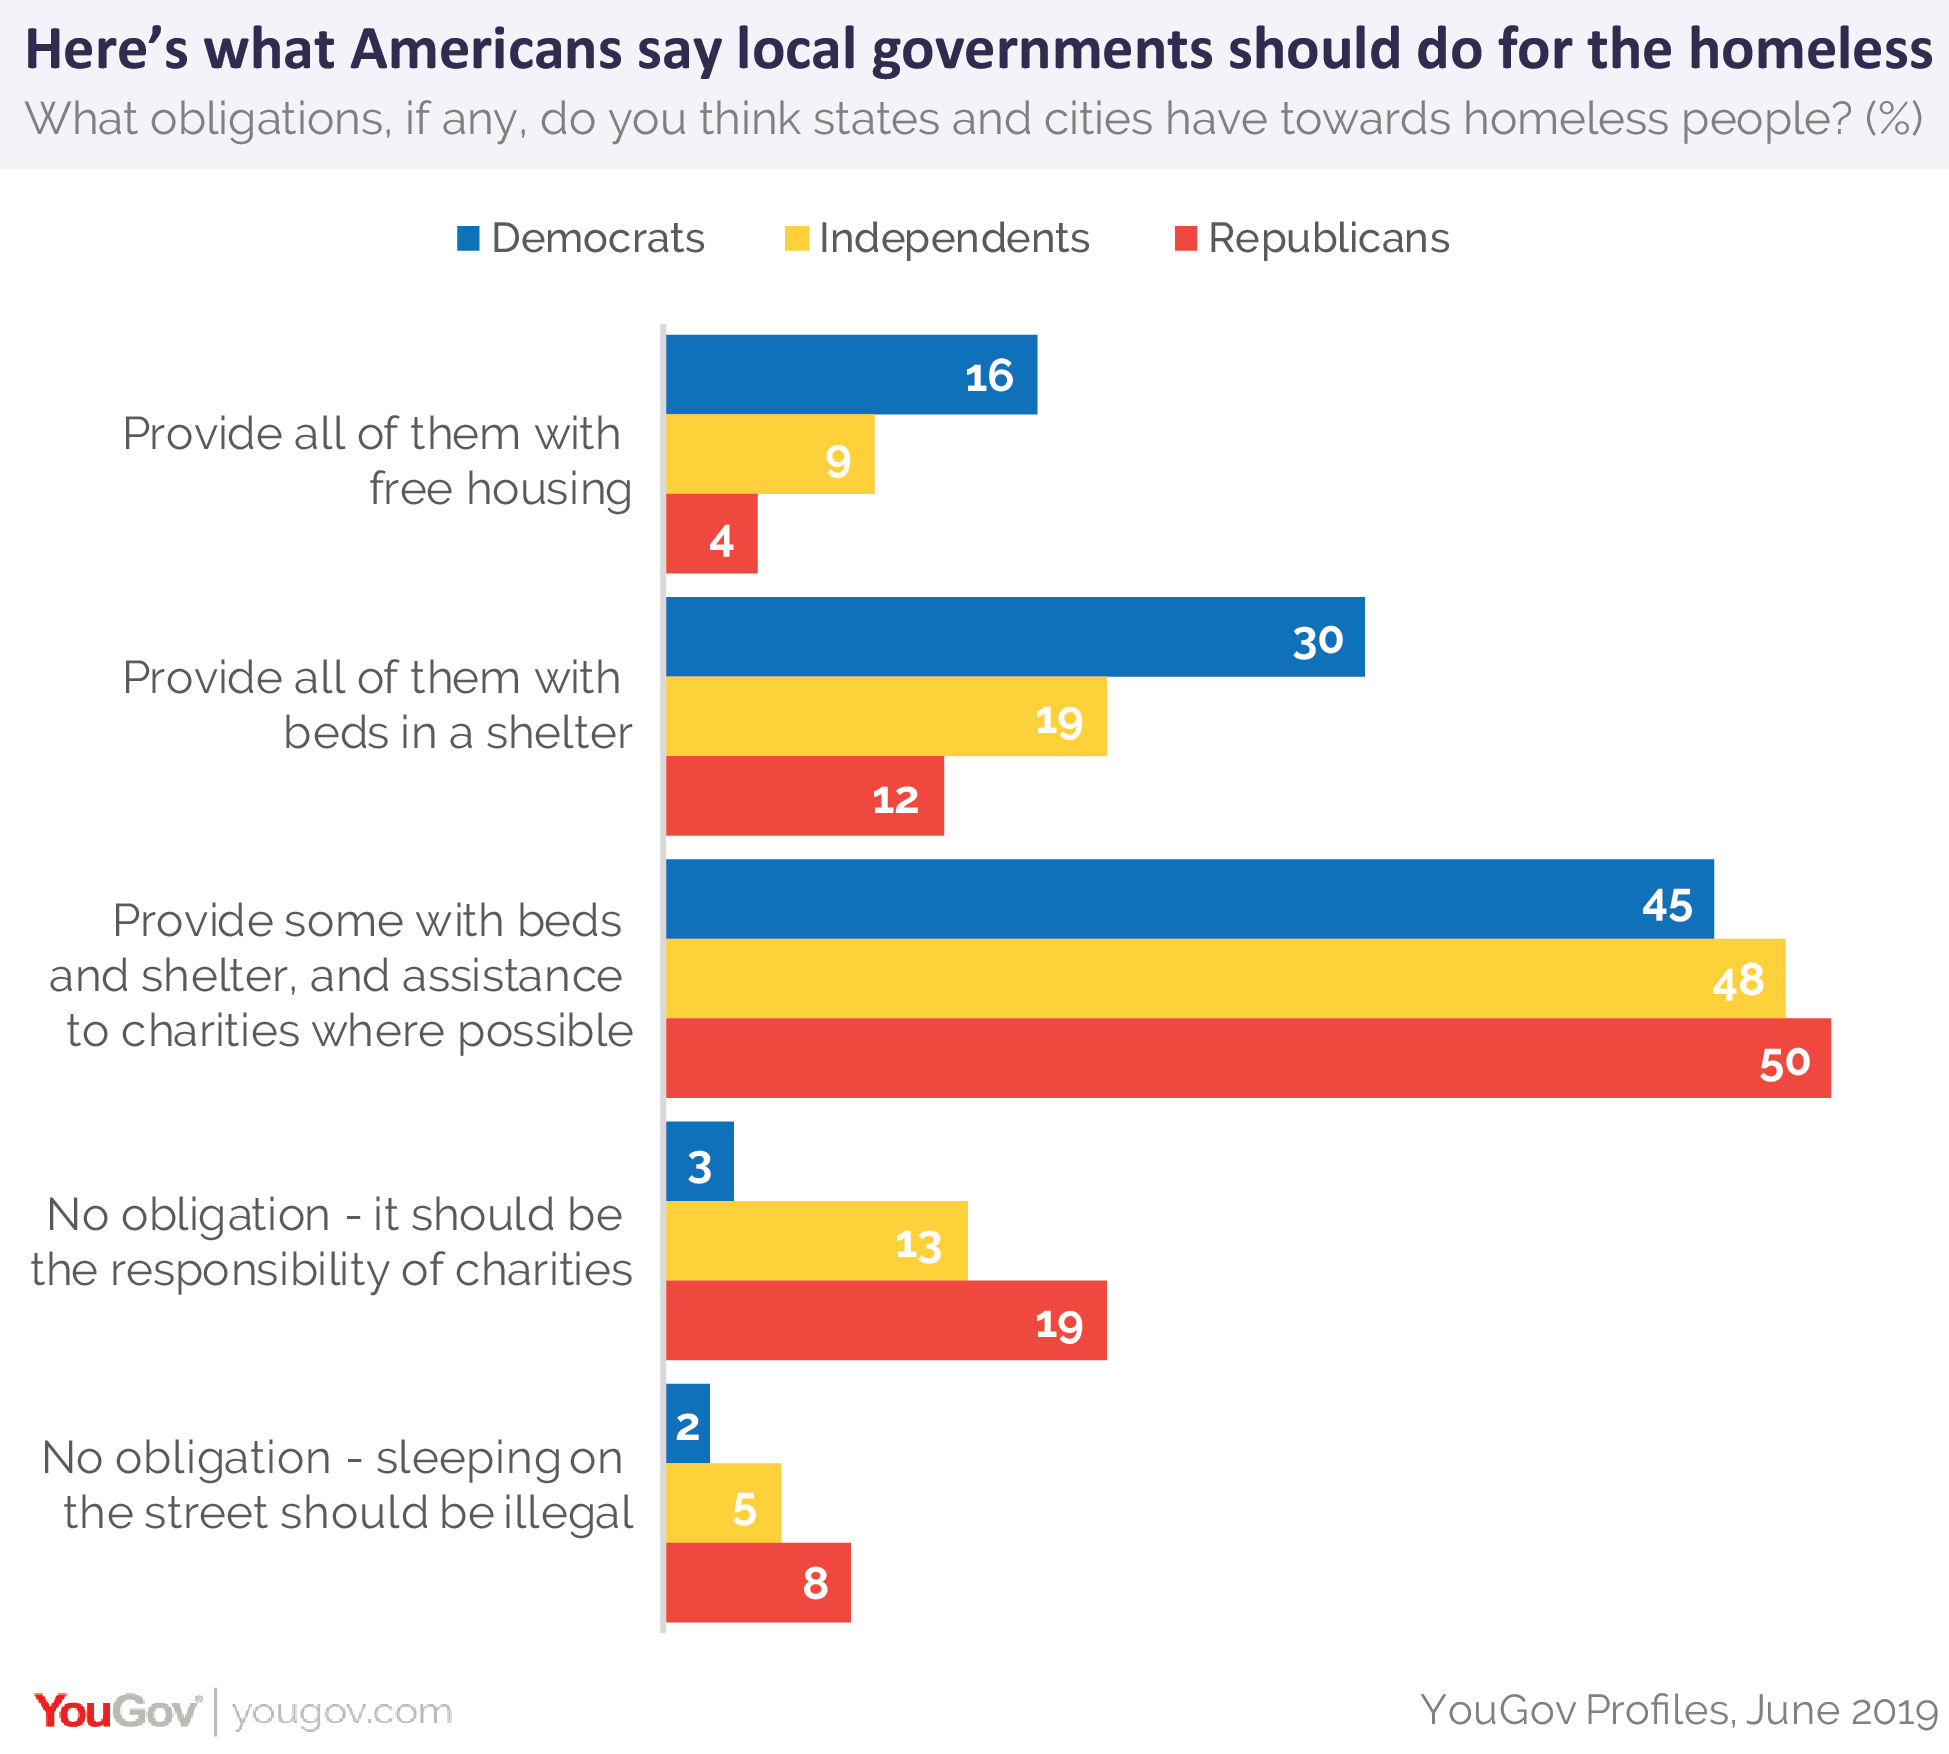 Here's what Americans say local governments should do for the homeless in America